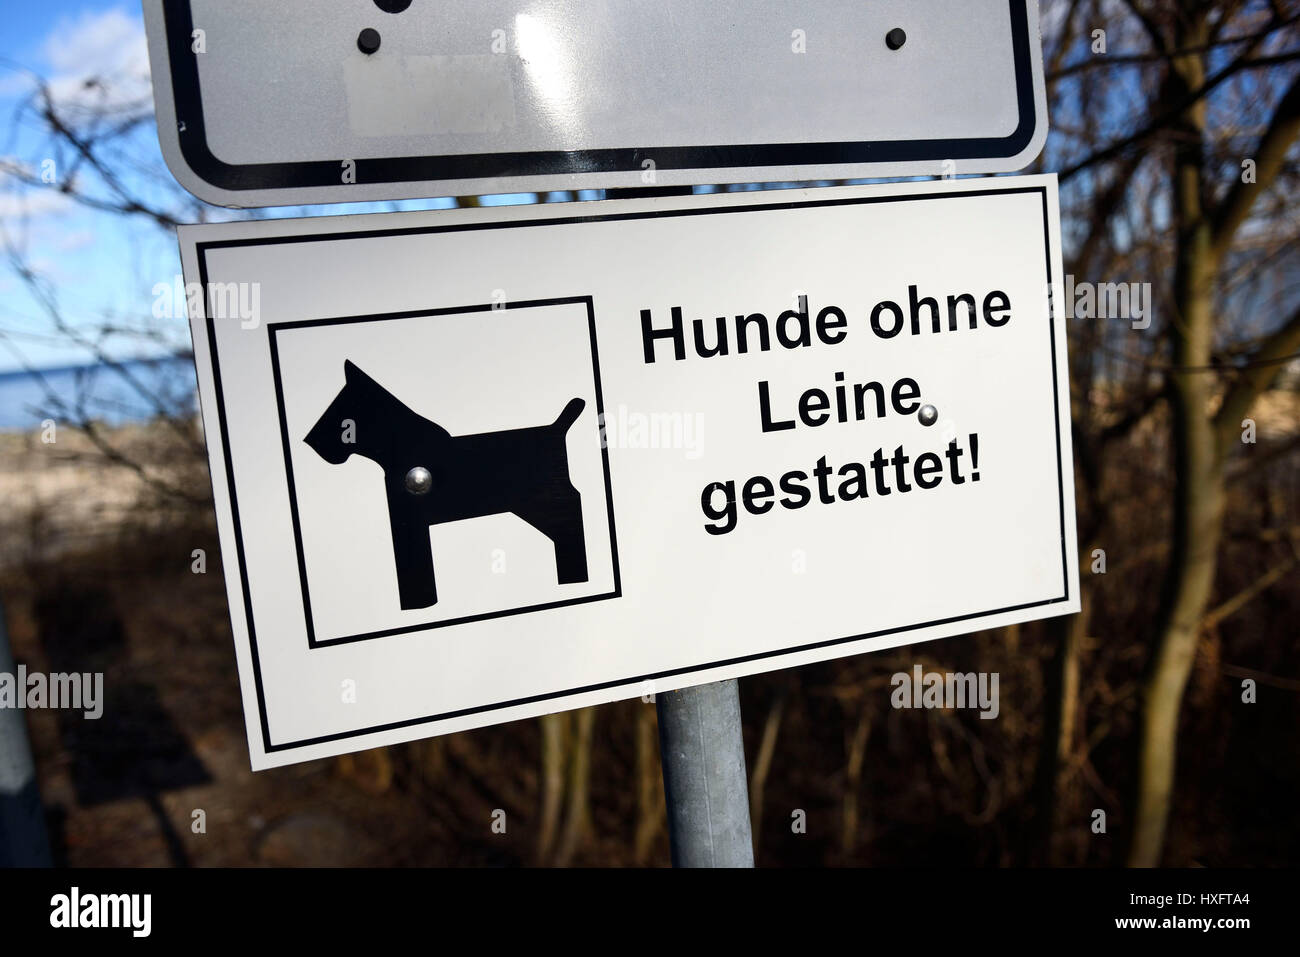 Dogs permits without rope, sign, Hunde ohne Leine gestattet, Schild - Stock Image